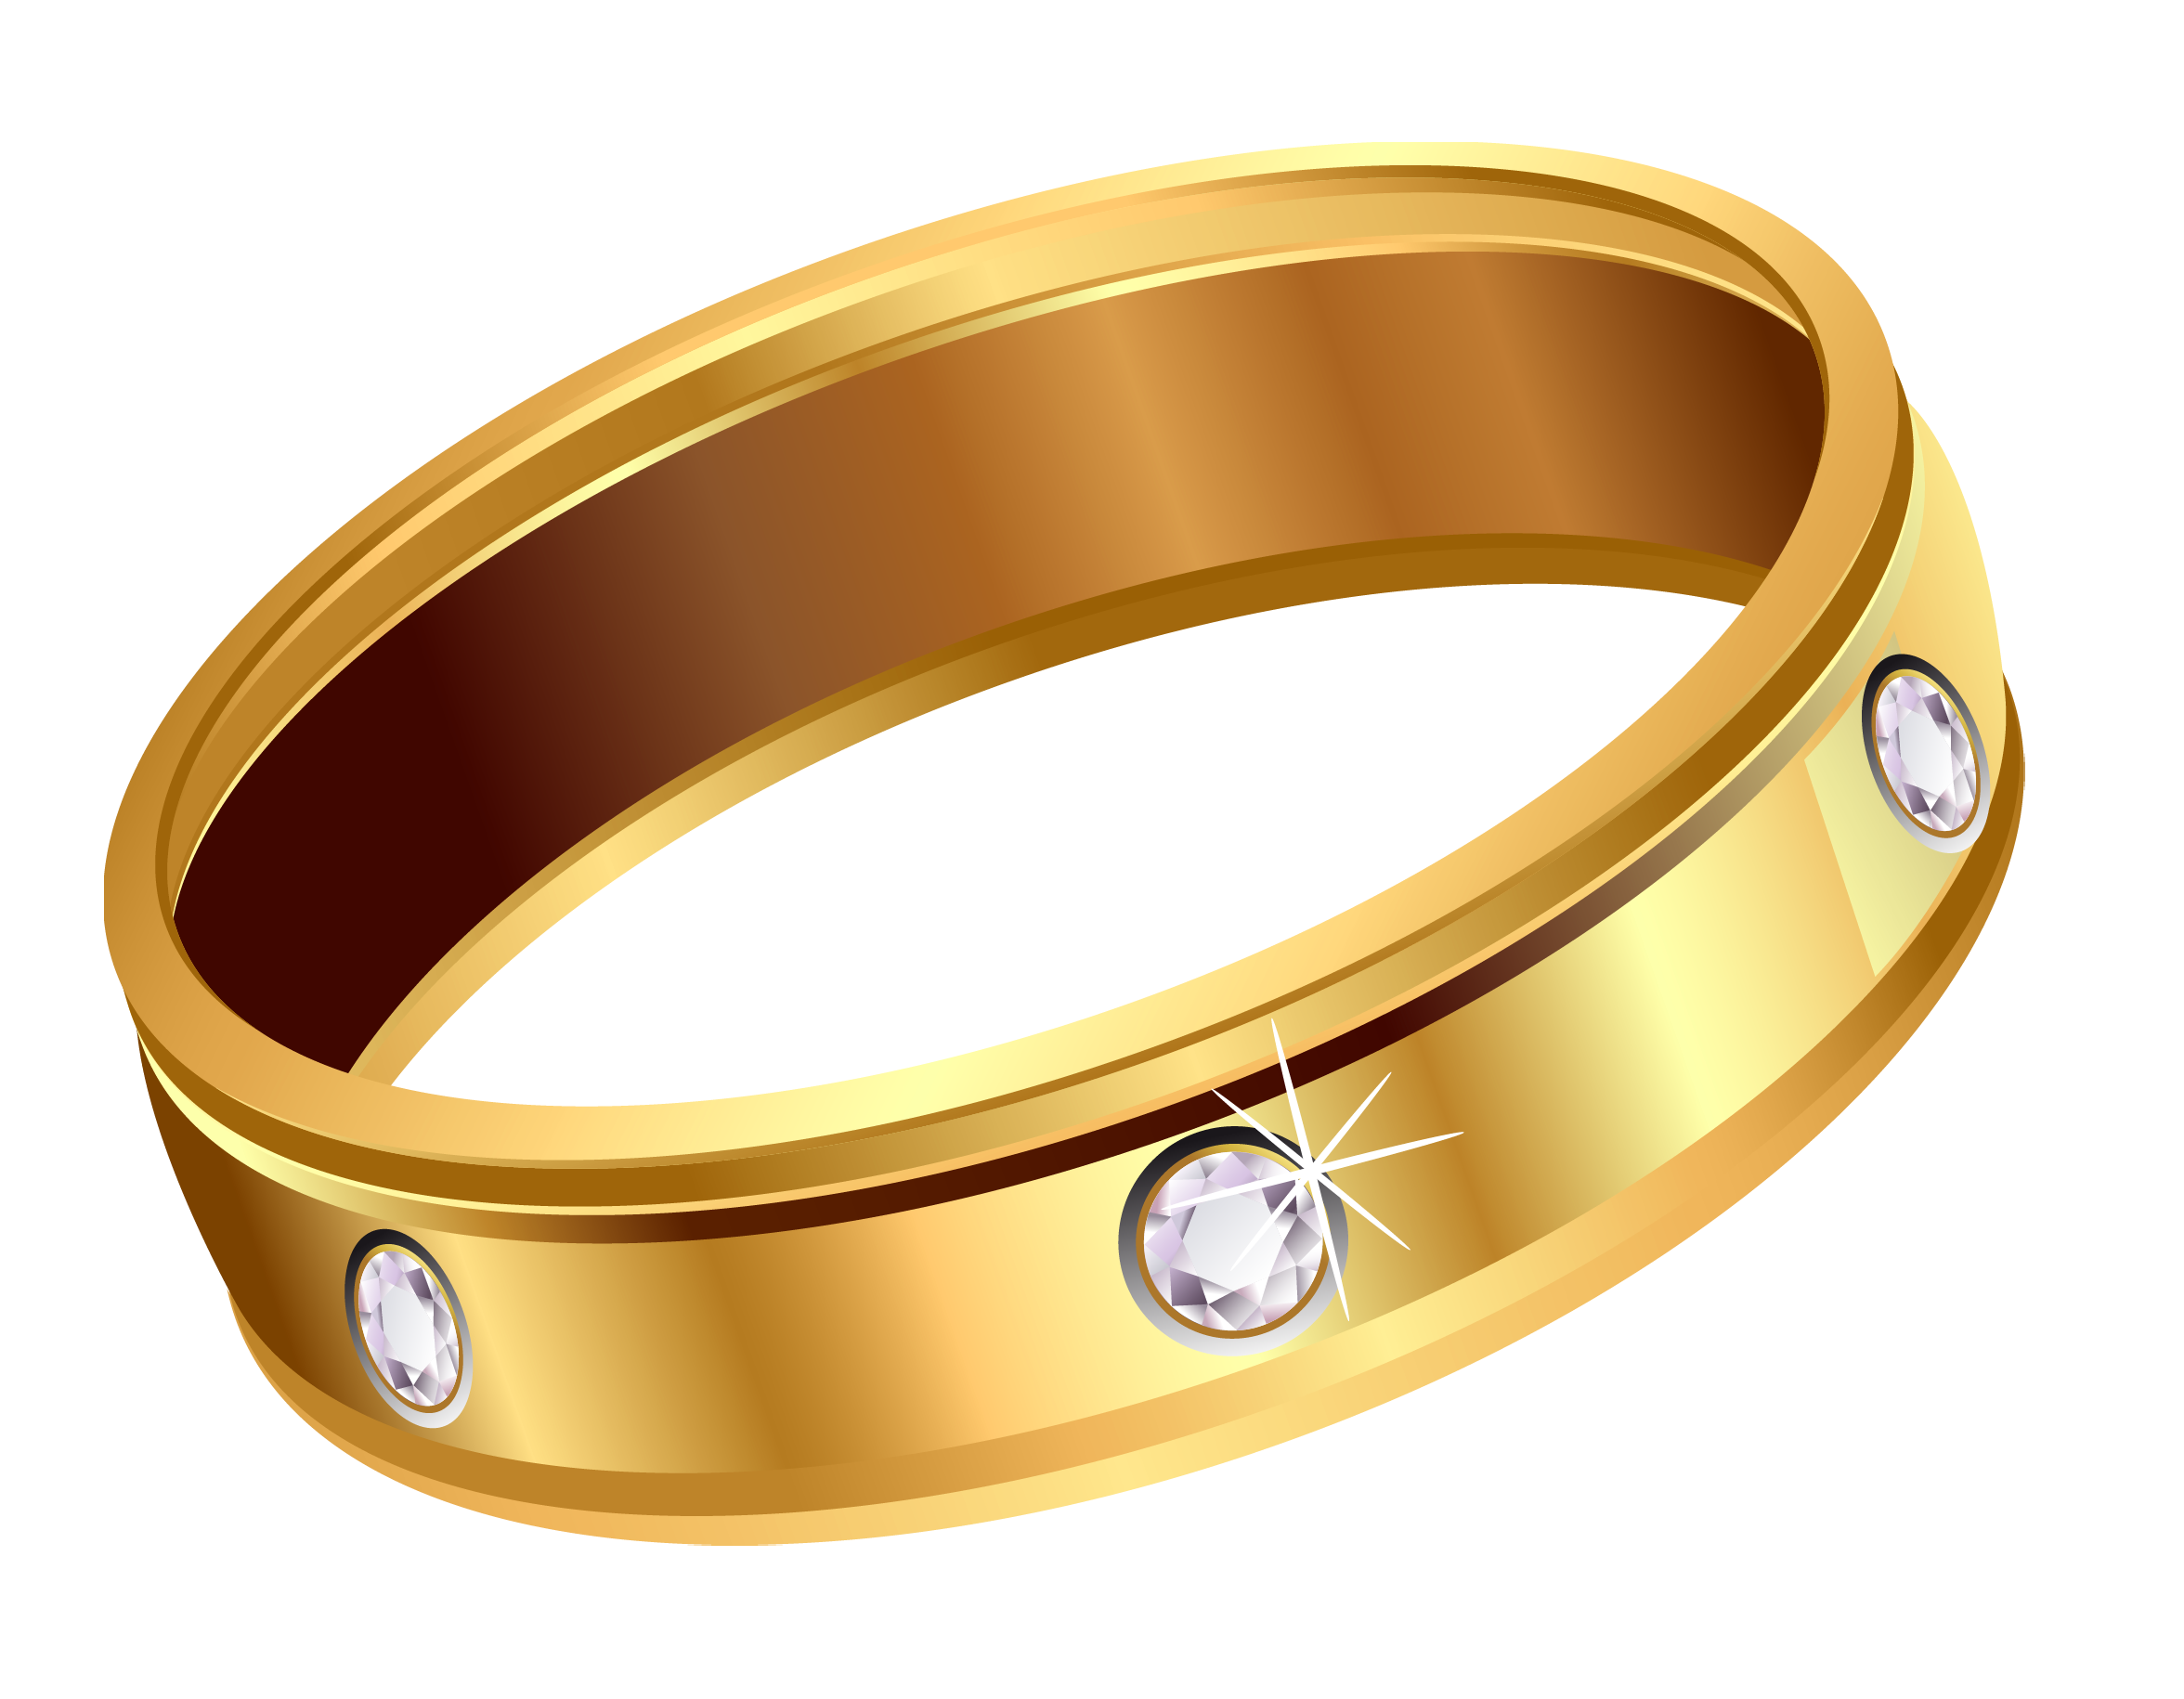 Jewelry clipart file. Transparent gold ring with